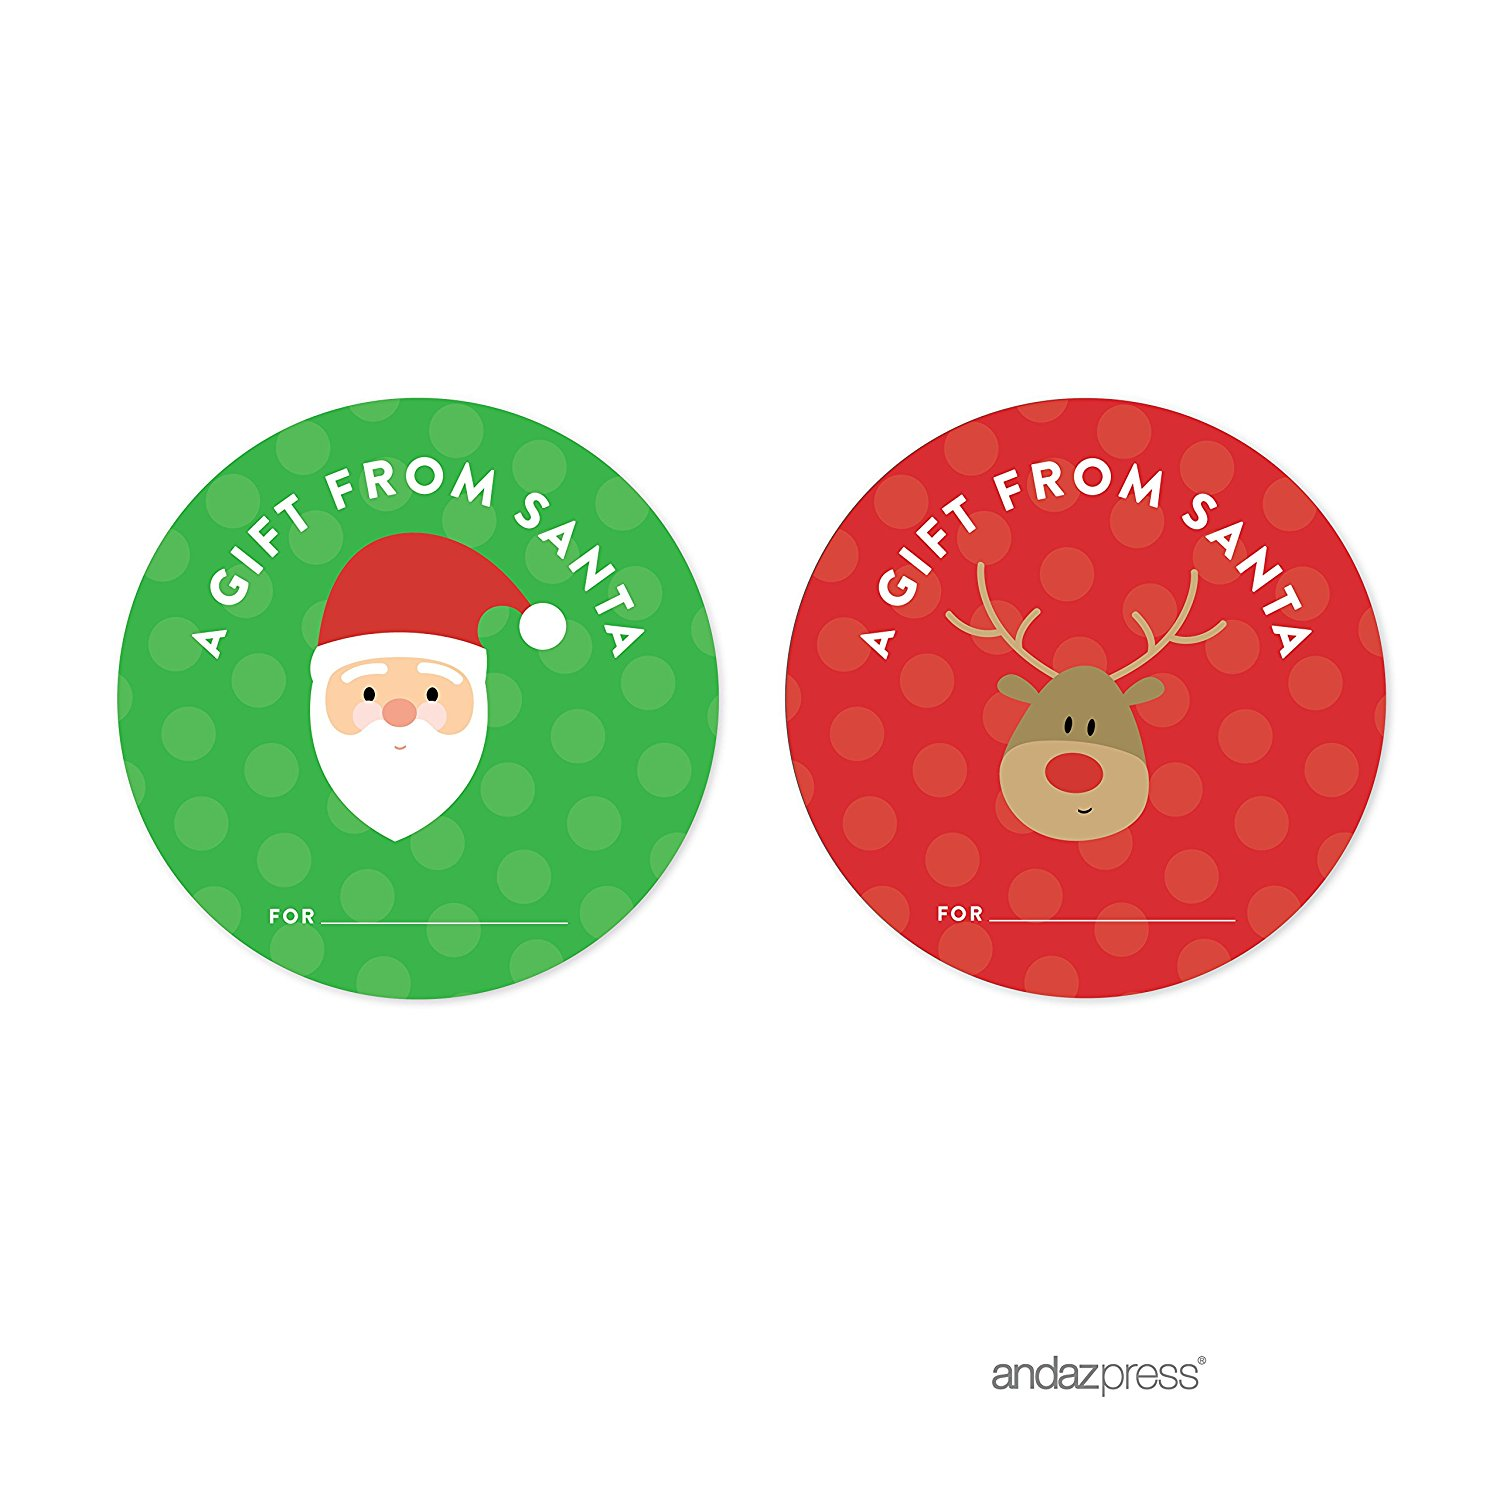 A Gift From Santa Red Christmas Round Circle Gift Label Stickers, 40-Pack